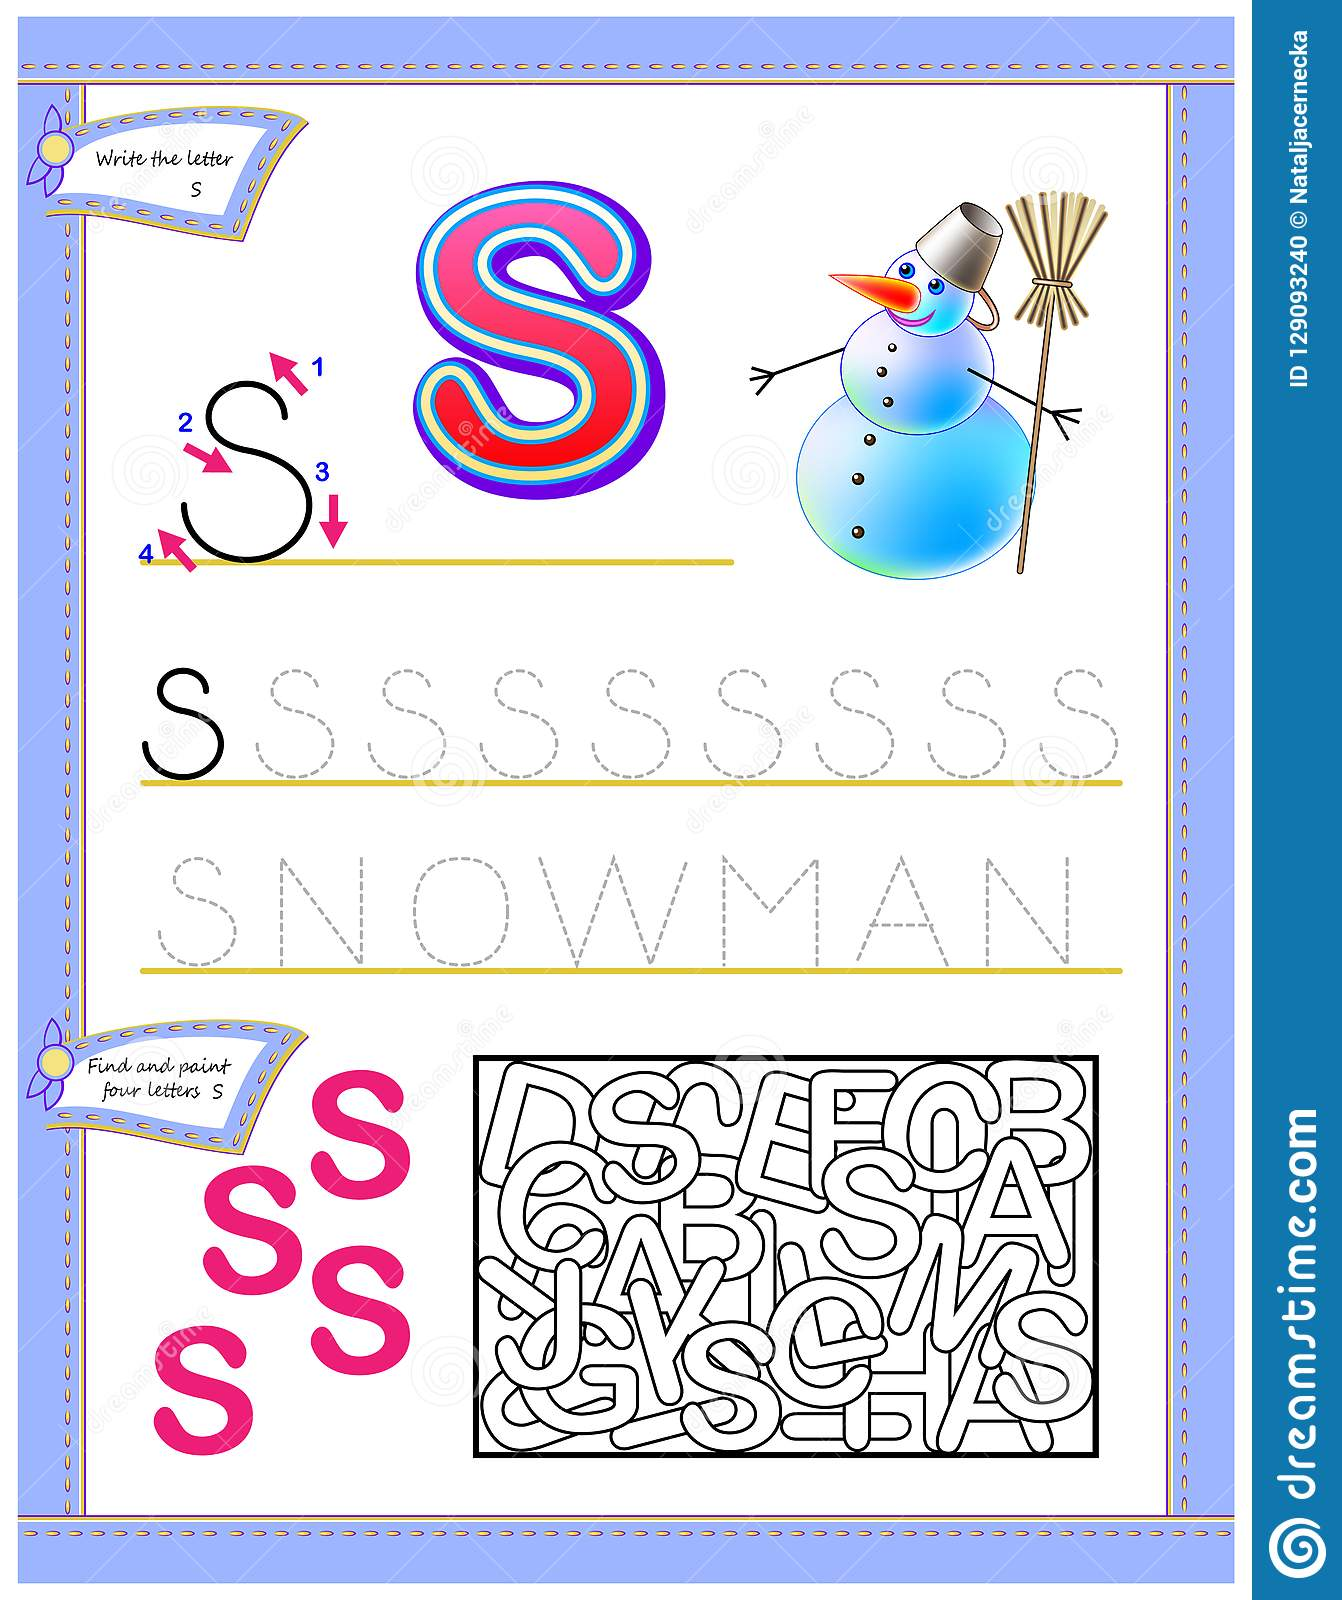 Worksheet For Kids With Letter S For Study English